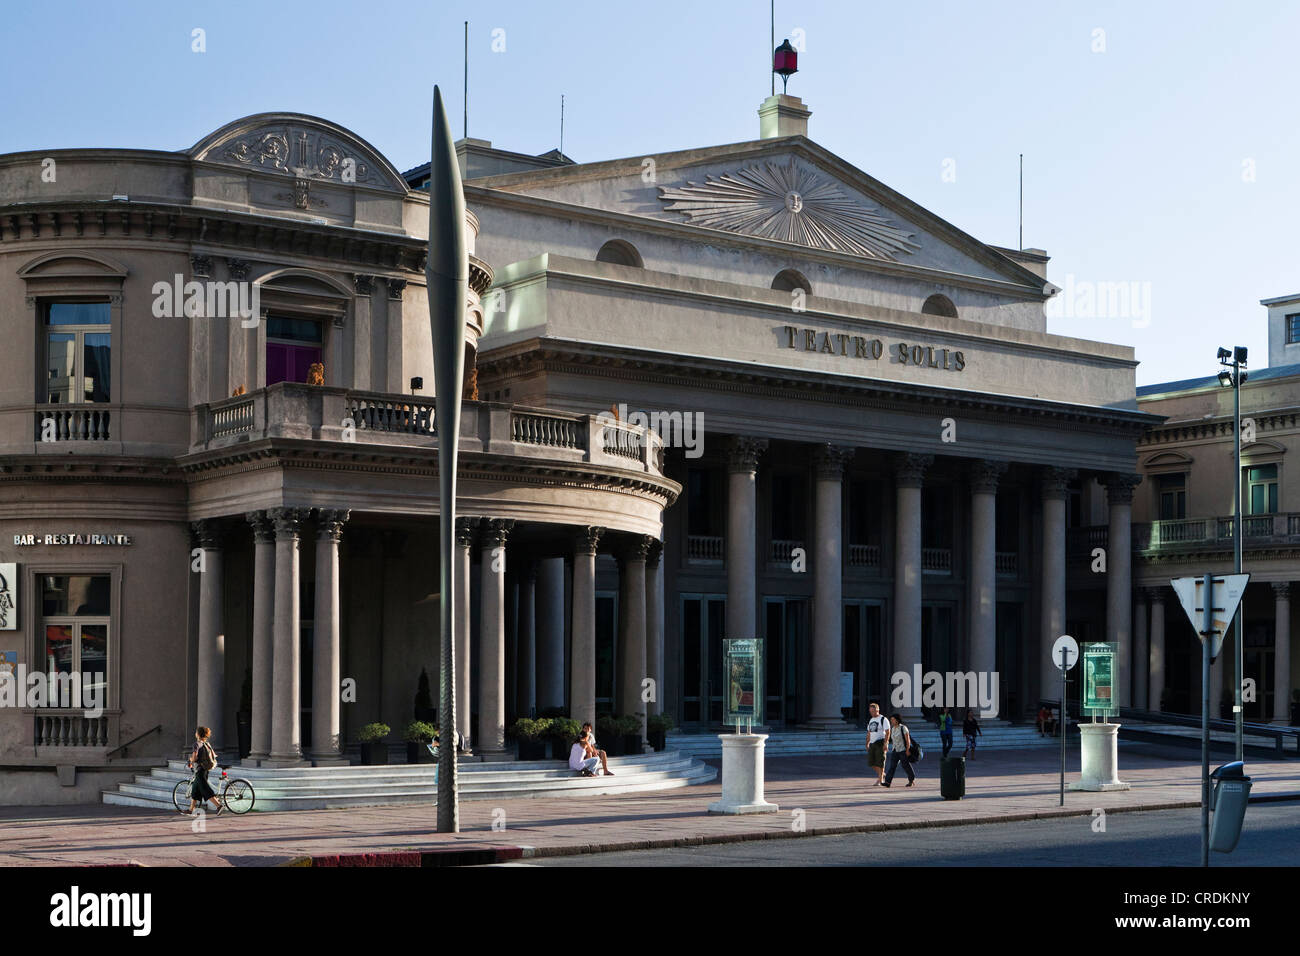 Teatro Solis, Solis Theatre, the oldest theater in Uruguay, built in 1856, at the Plaza Independencia, Montevideo, - Stock Image